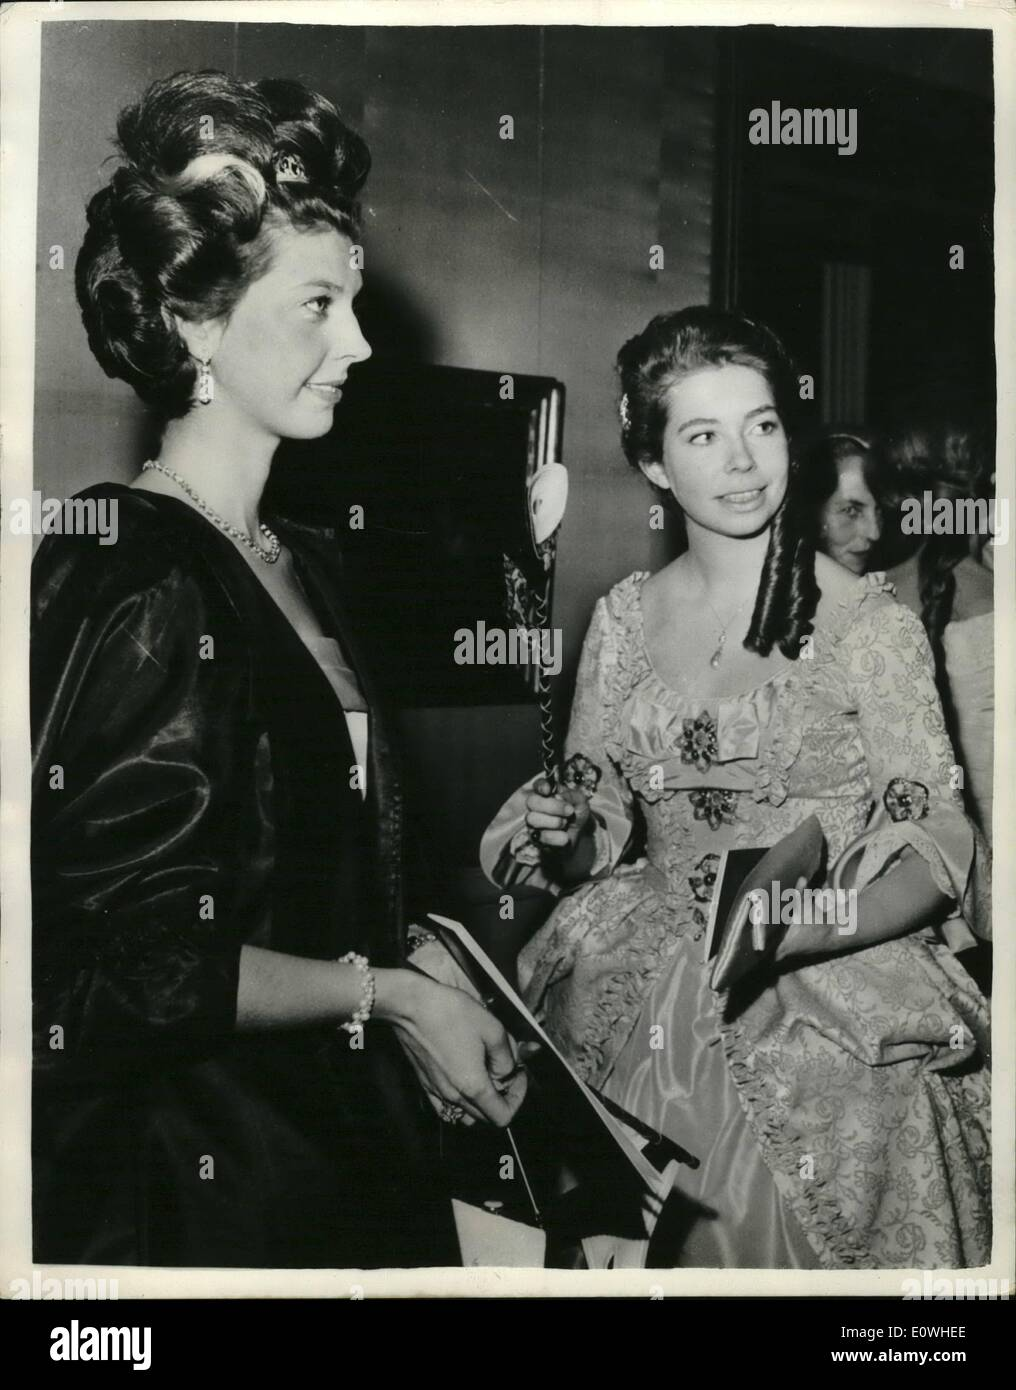 Jan. 01, 1963 - Swedish Princess in Fancy dress: Seen at the Venetian Fancy Dress Ball held recently as the National Art Gallery in Stockholm were the Princesses Desiree and Christina. - Stock Image